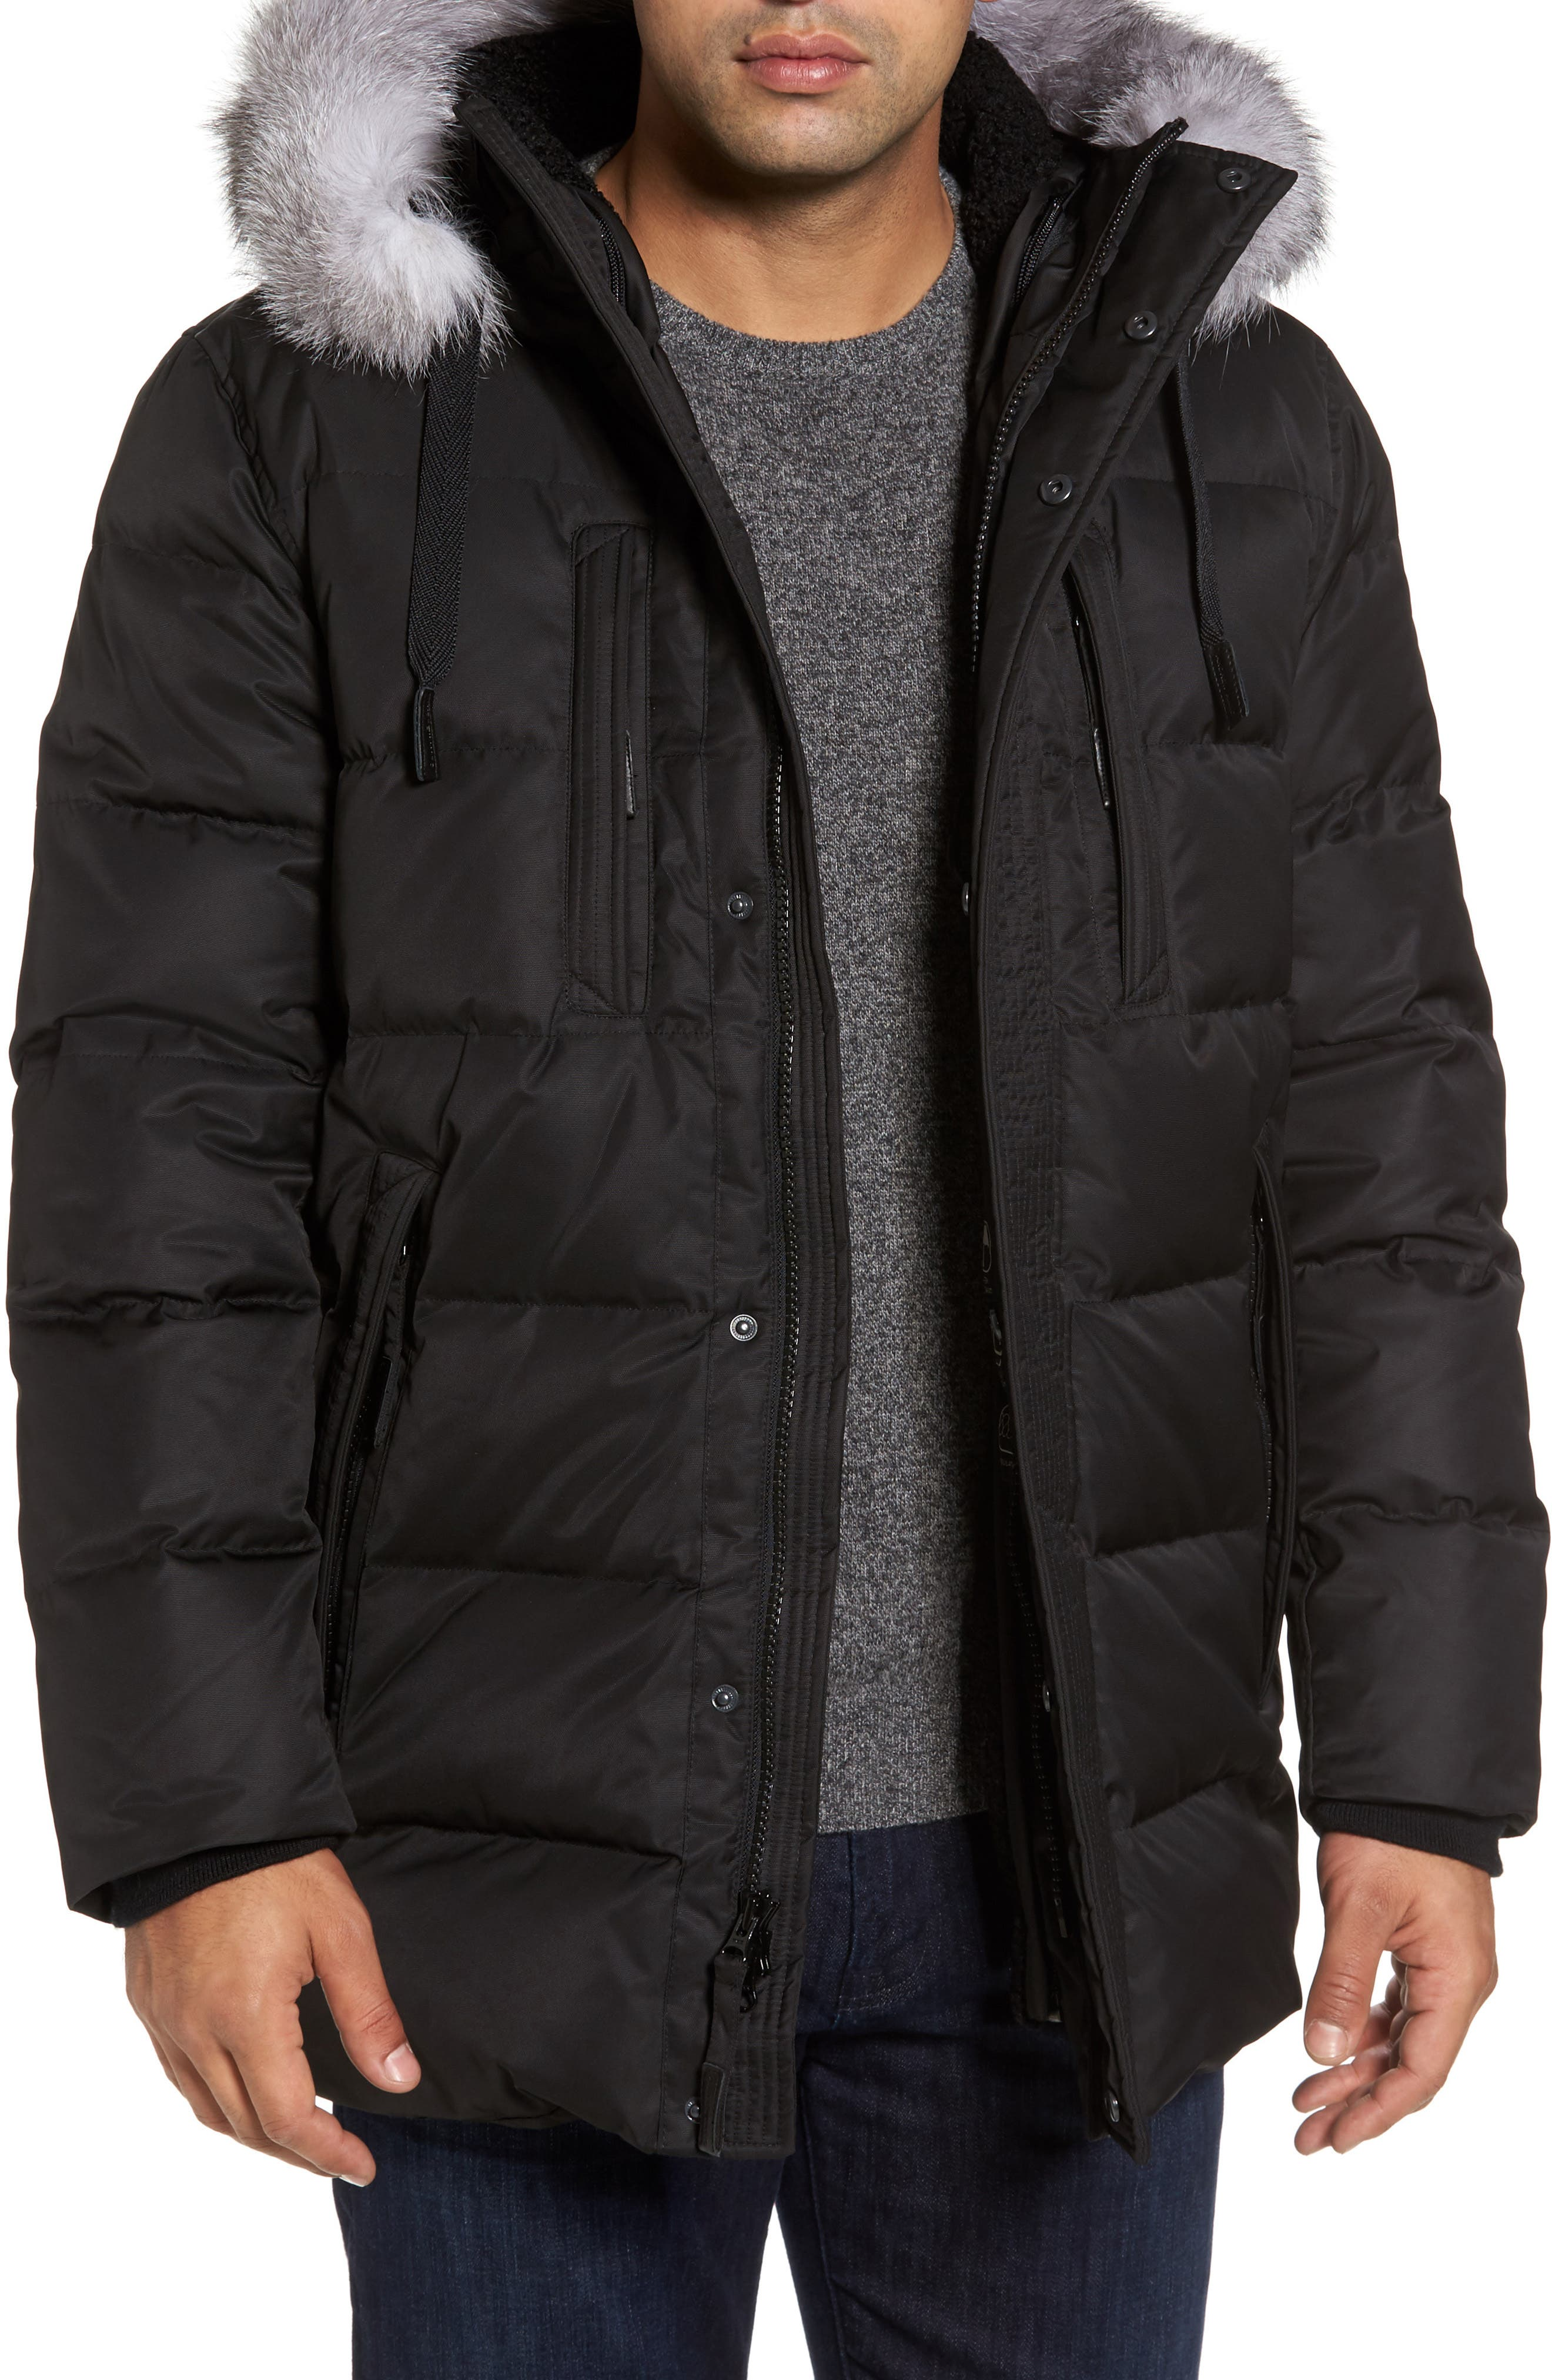 Quilted Down Jacket with Genuine Fox Fur Trim,                         Main,                         color, Black